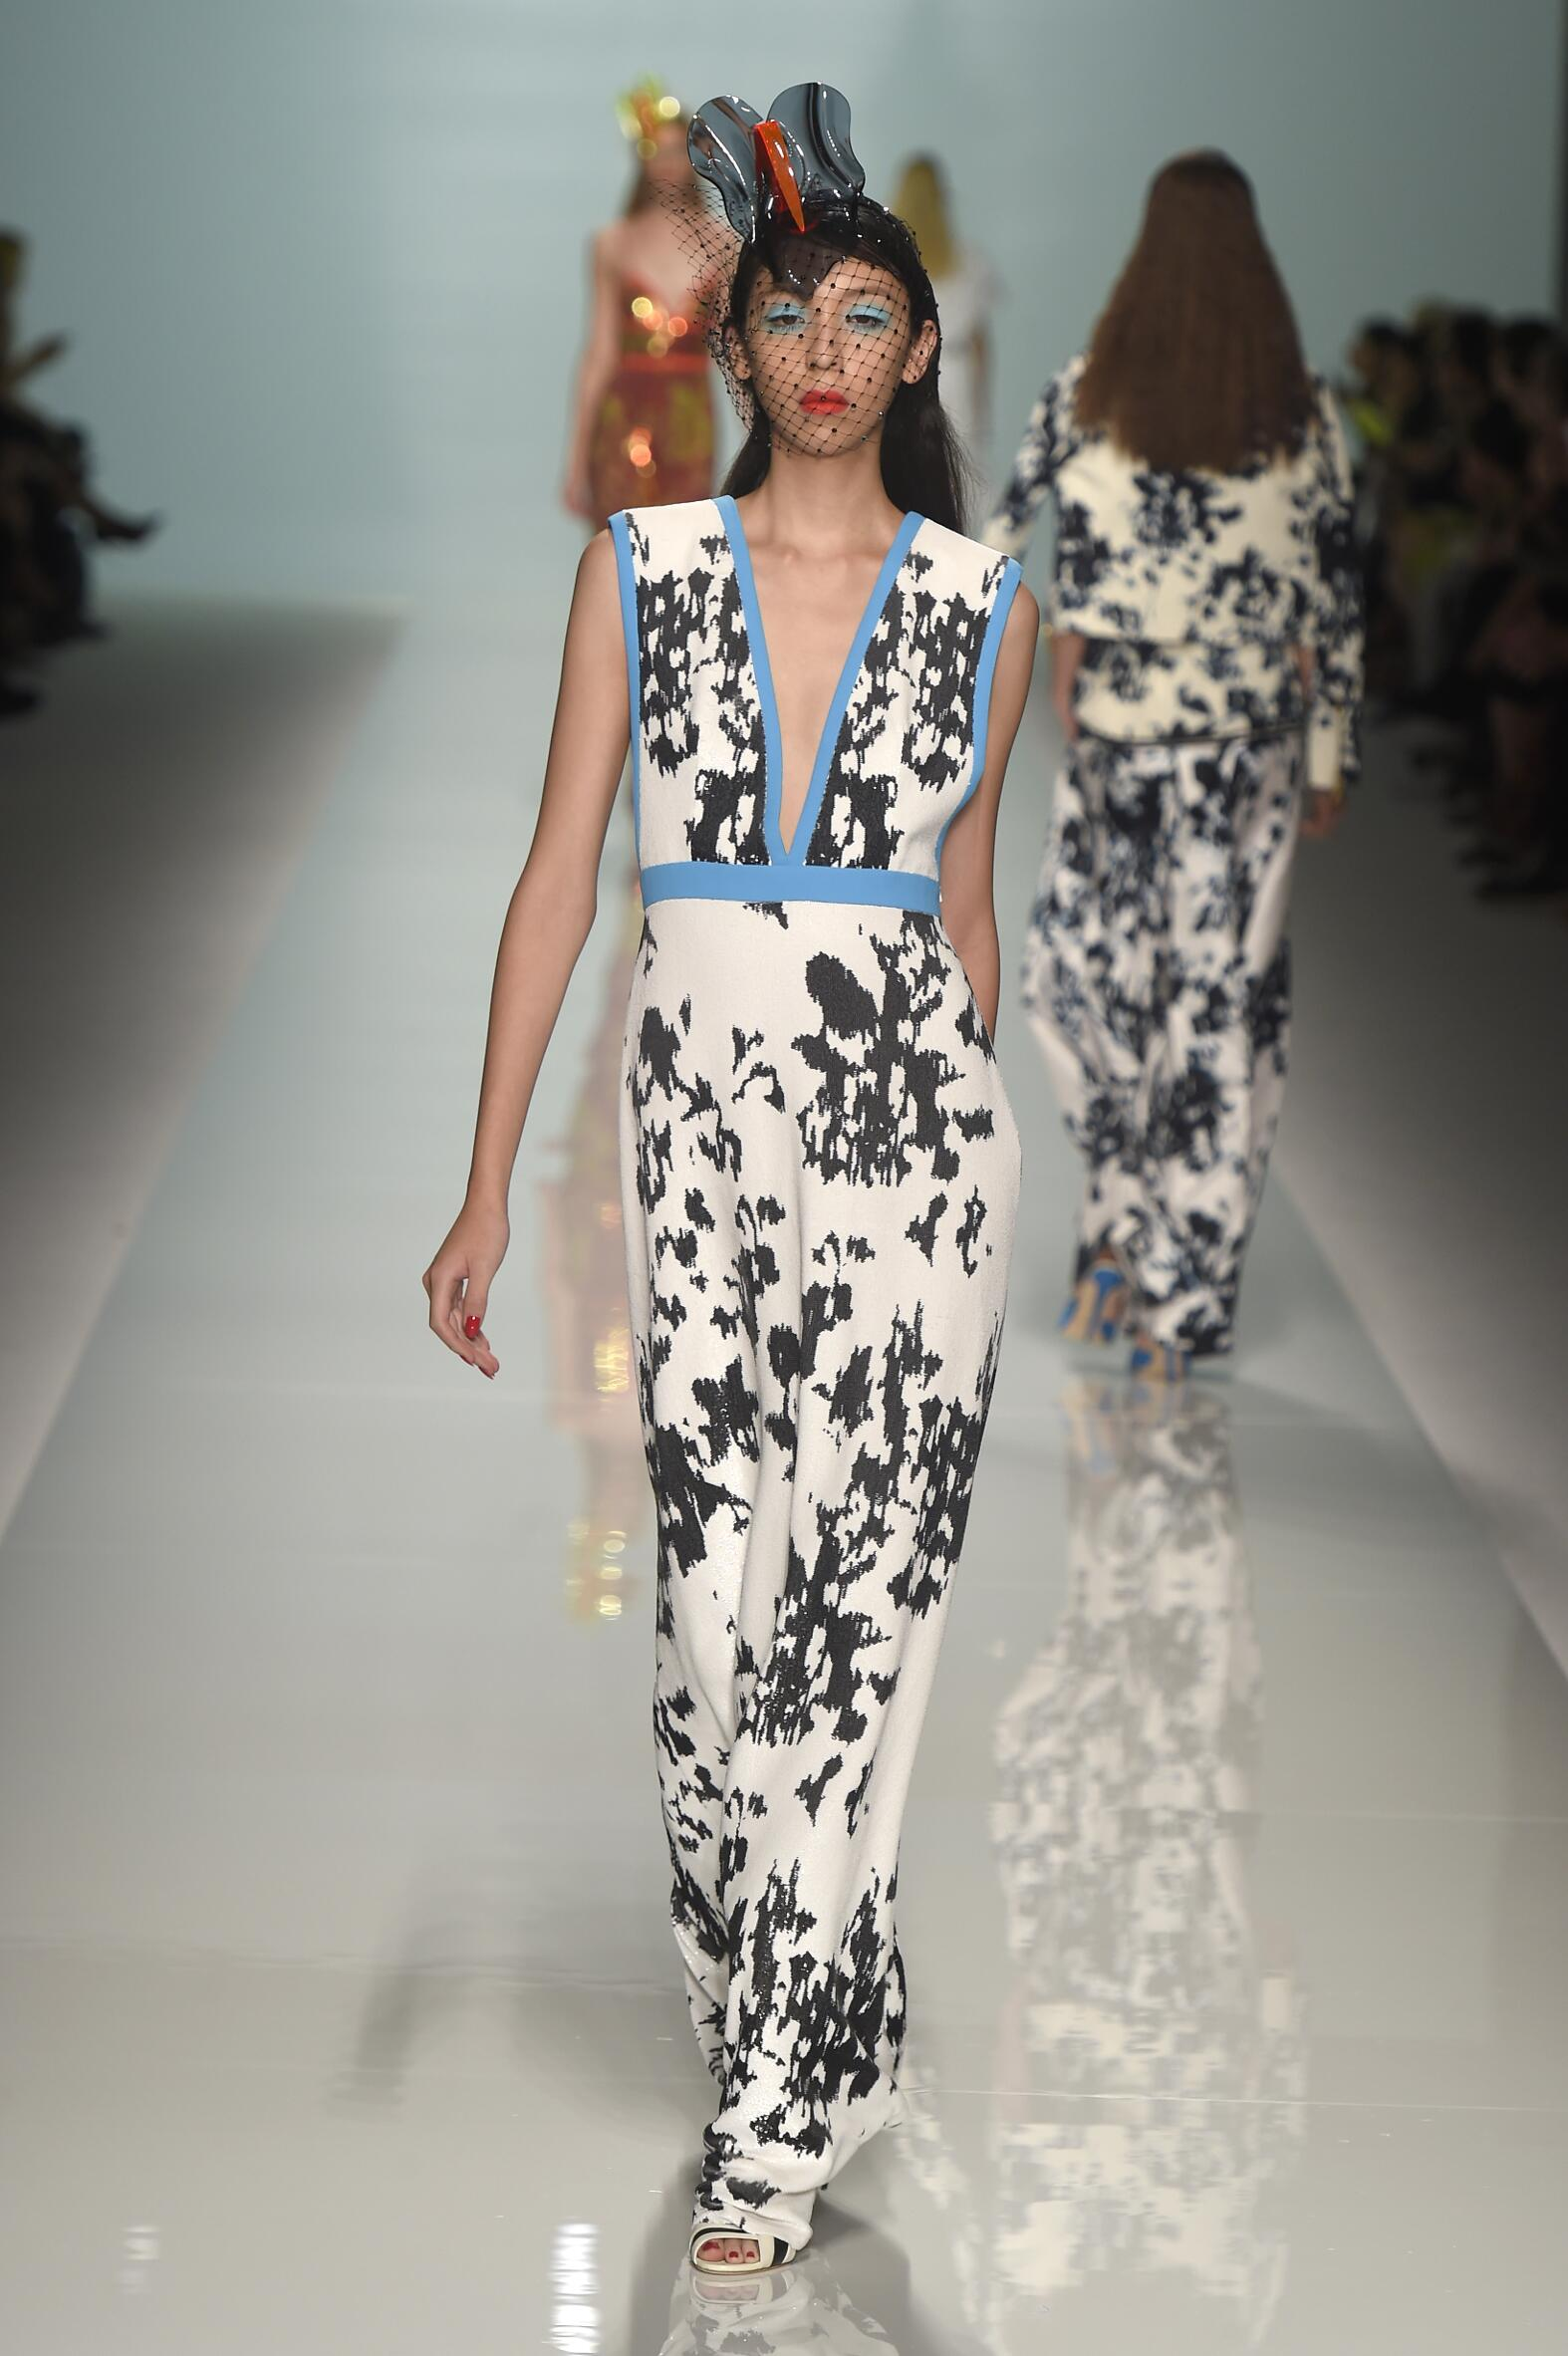 Fashion Show Music Catwalk 2014 Catwalk Emanuel Ungaro